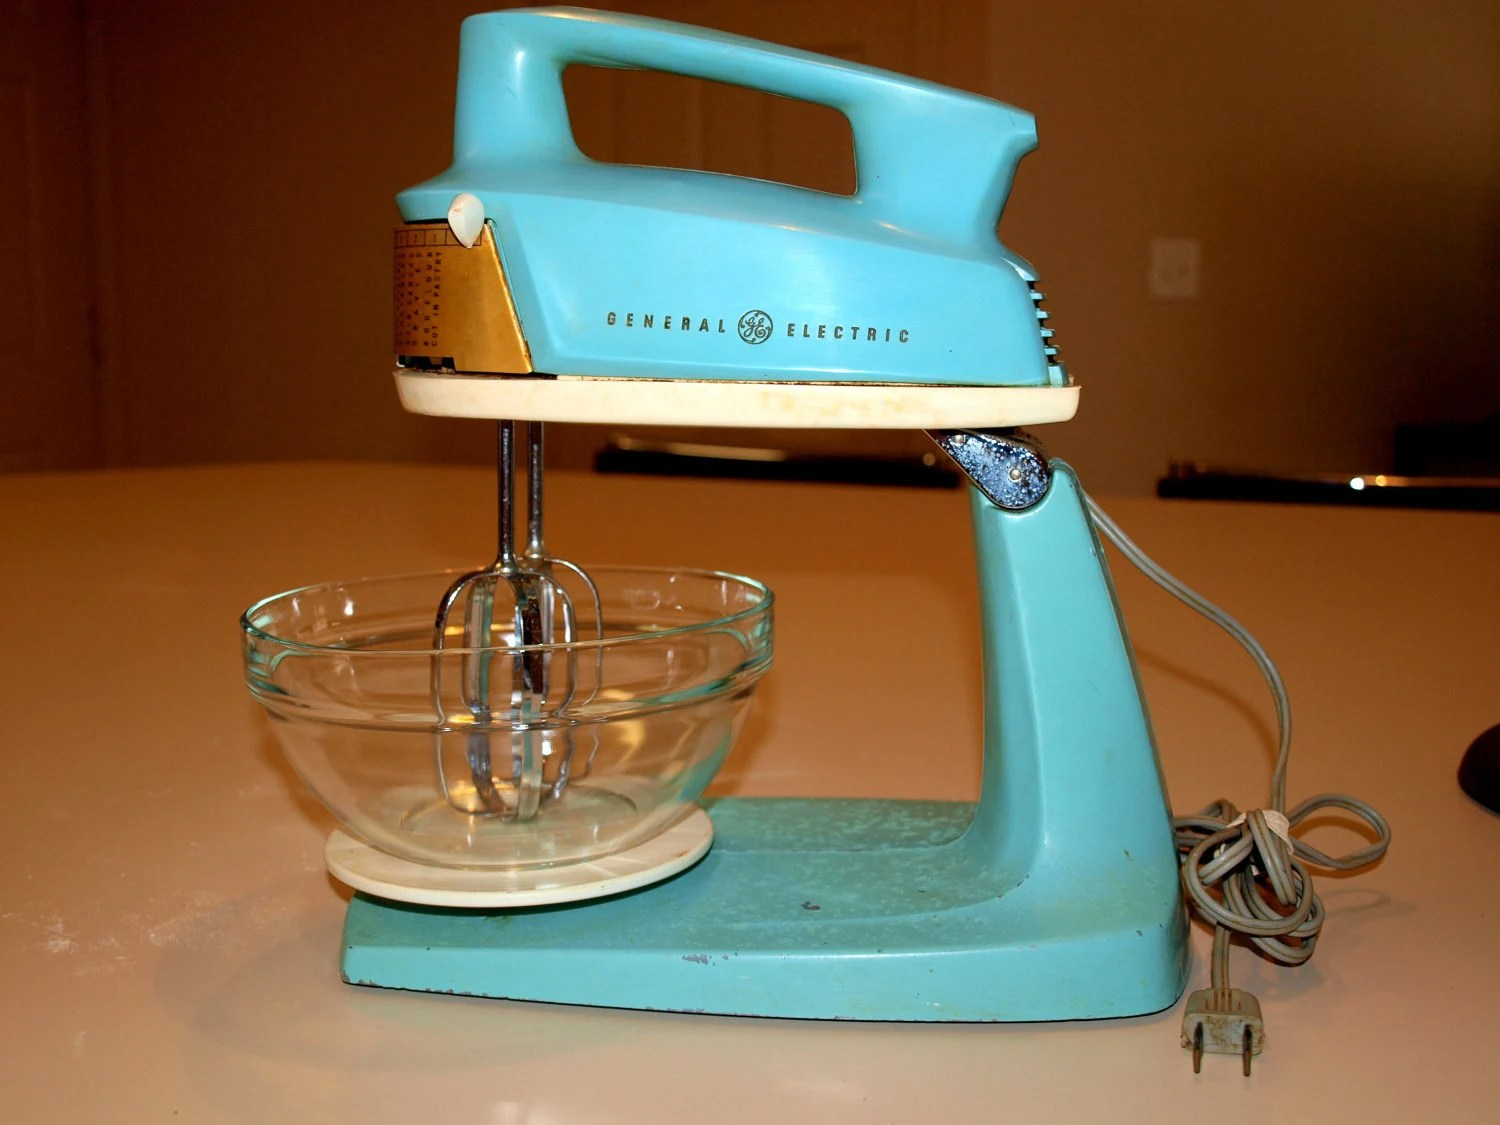 retro kitchen appliance refurbished table and chairs vintage turquoise general electric 2-in-one hand & stand mixer